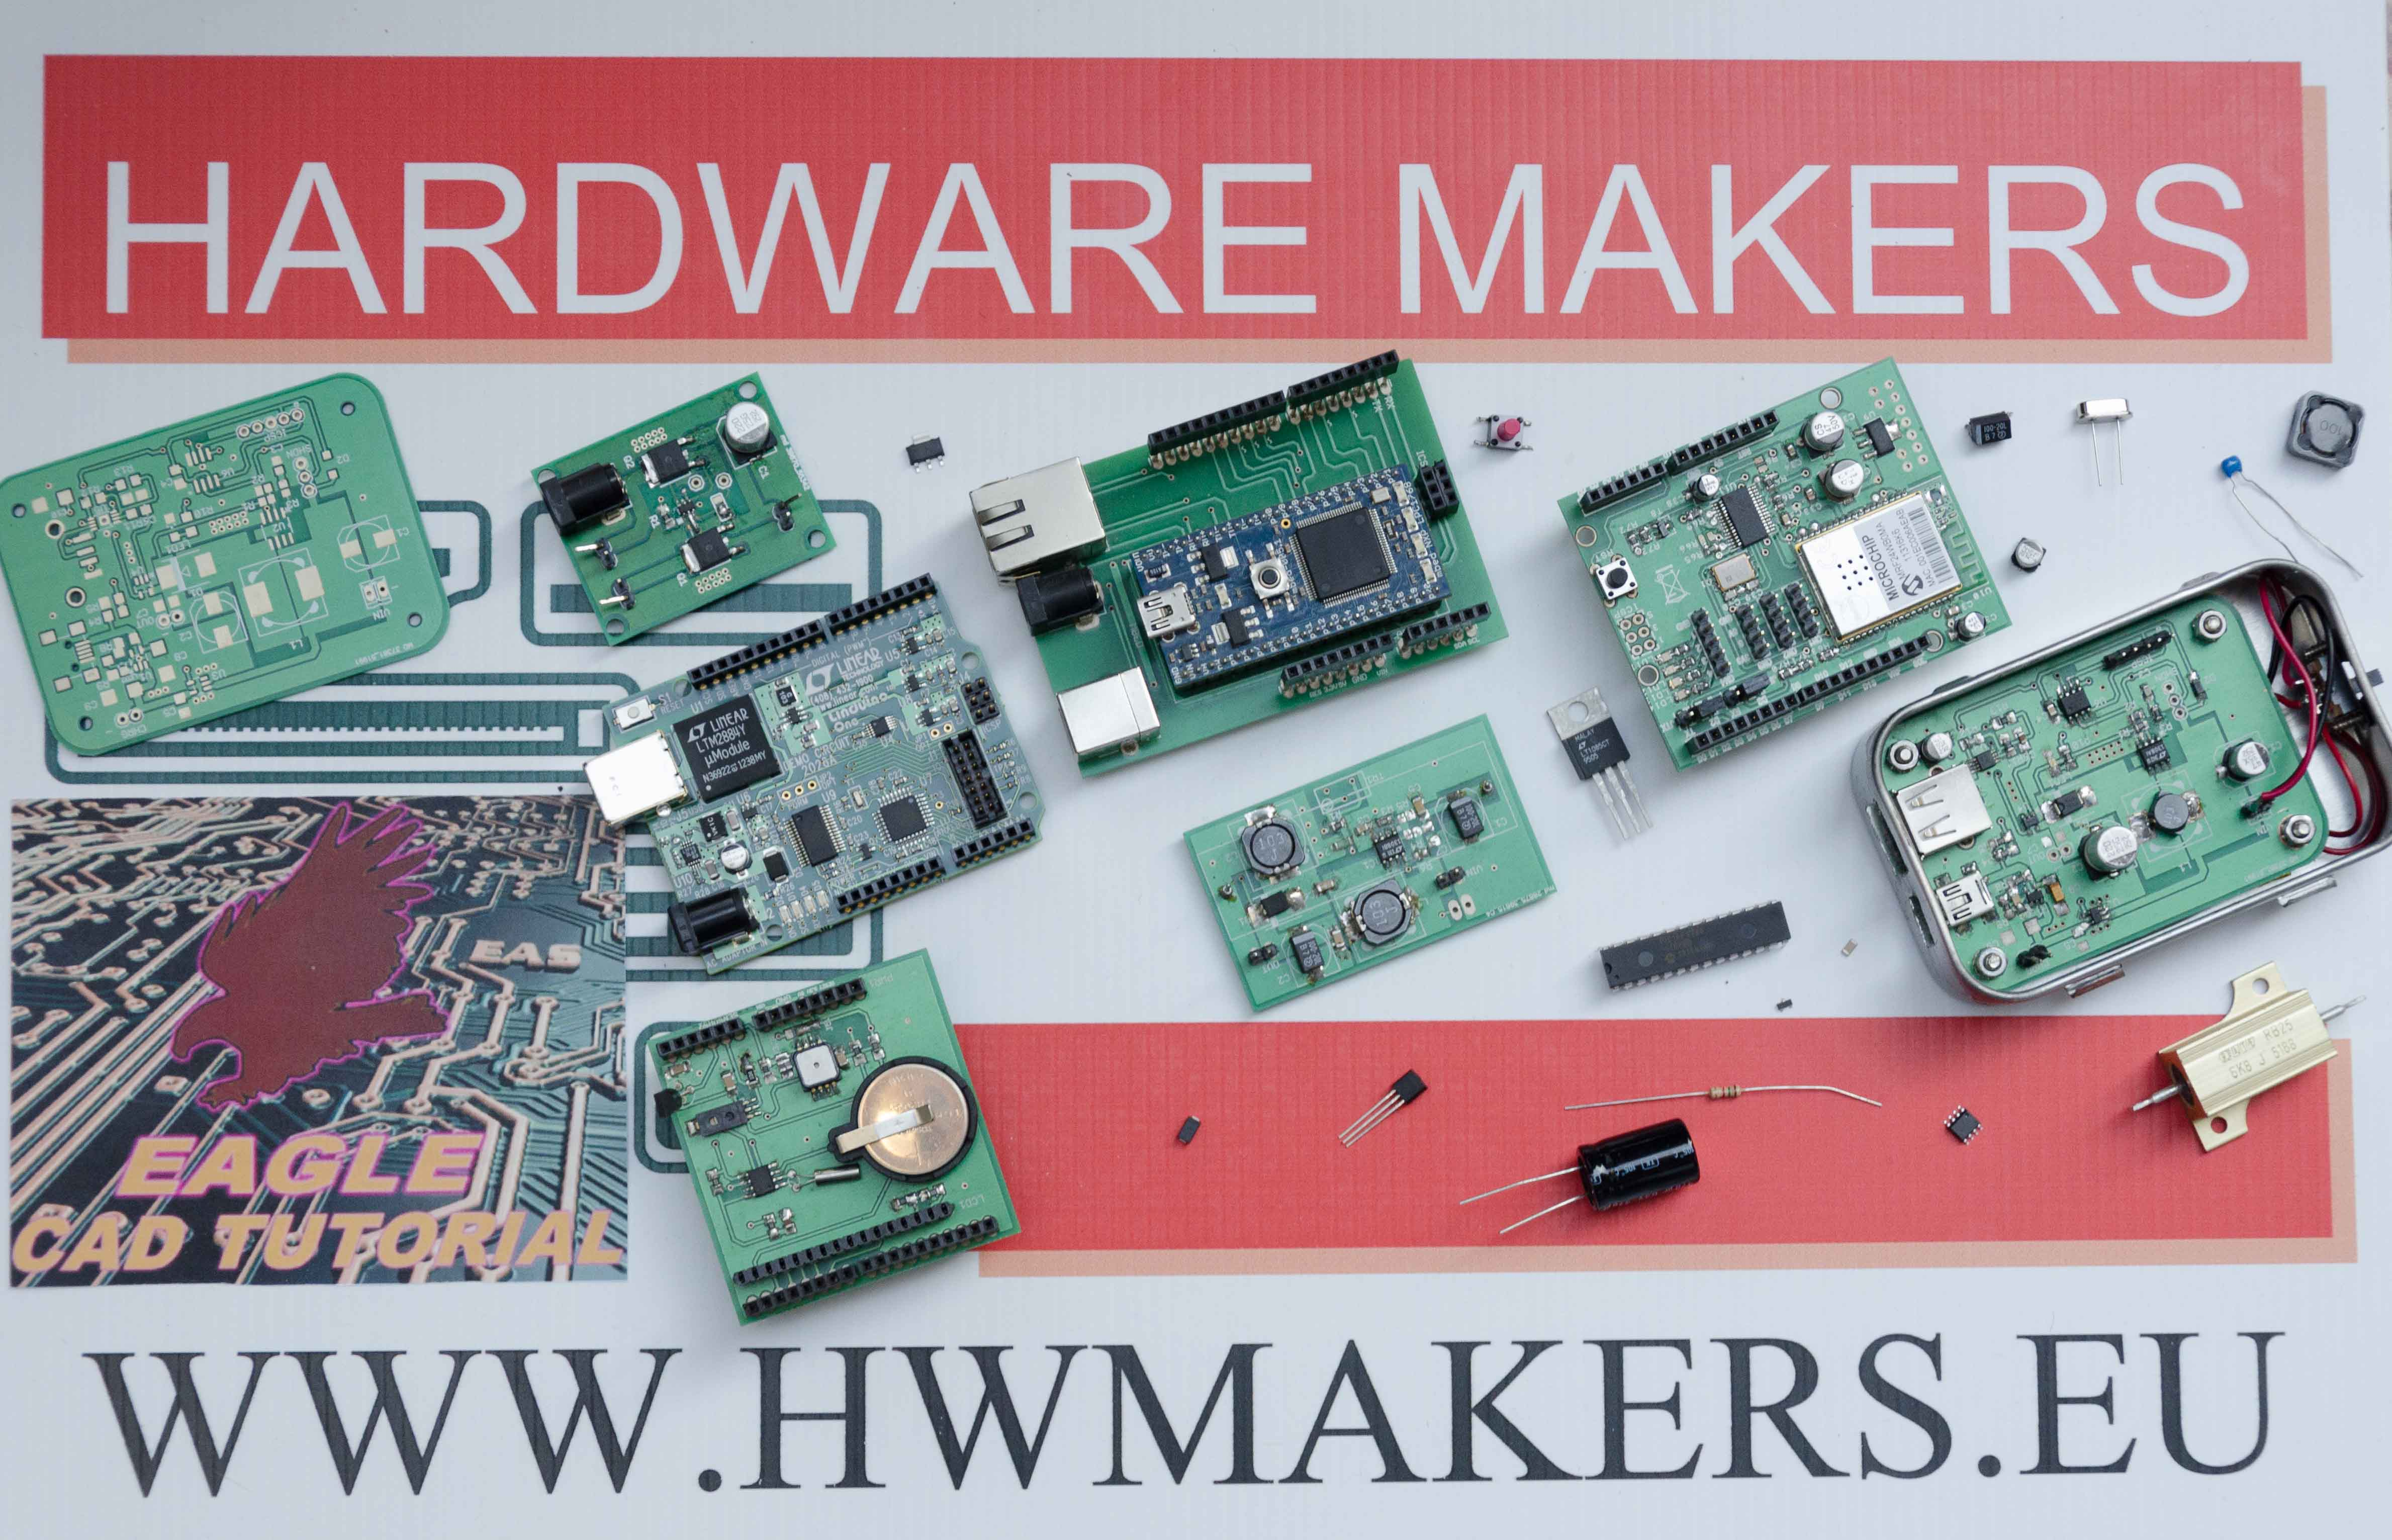 Hardware Makers